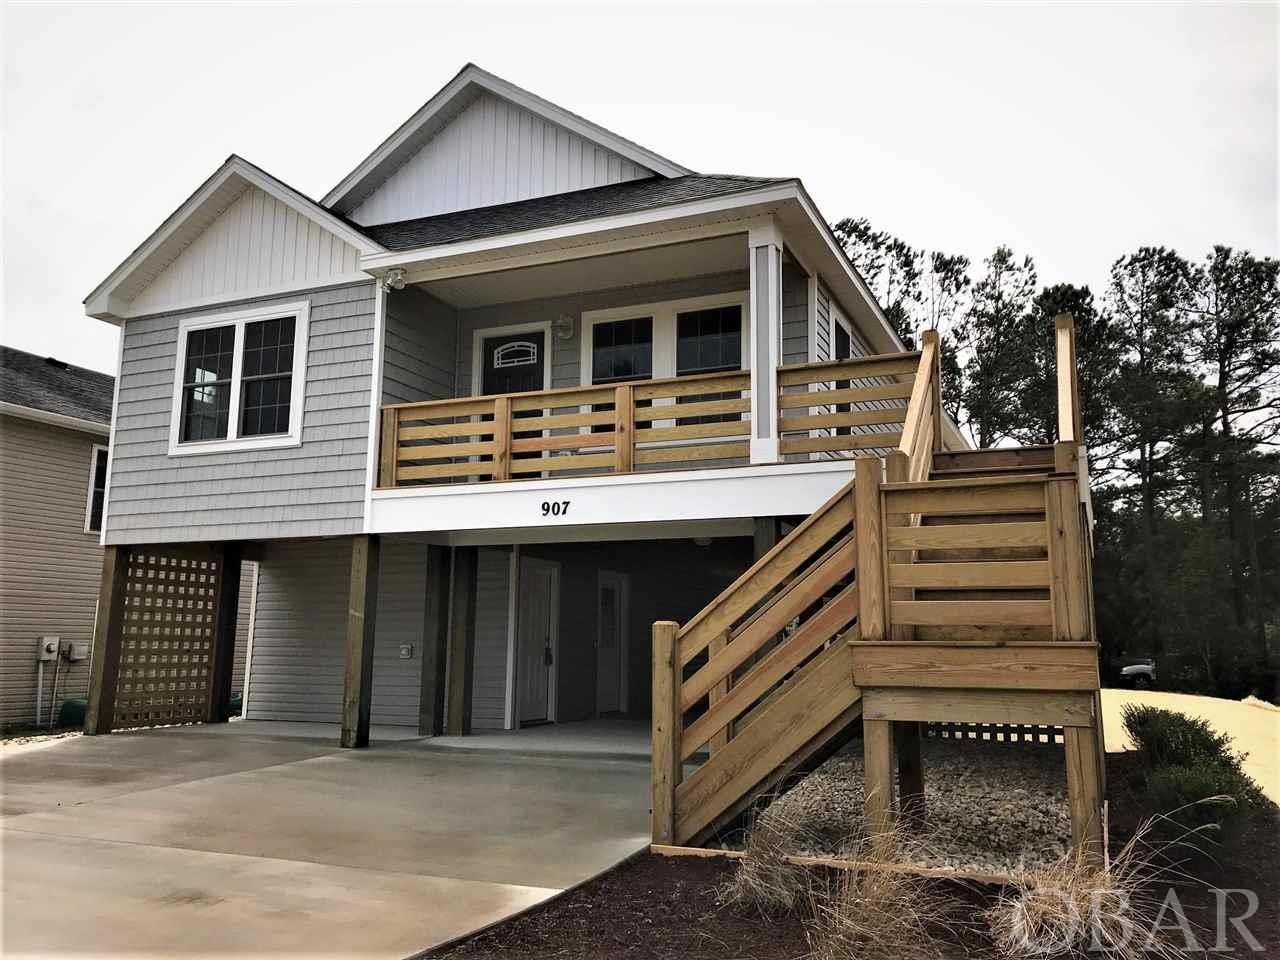 907 Third Street, Kill Devil Hills, NC 27948, 4 Bedrooms Bedrooms, ,3 BathroomsBathrooms,Residential,For sale,Third Street,104408